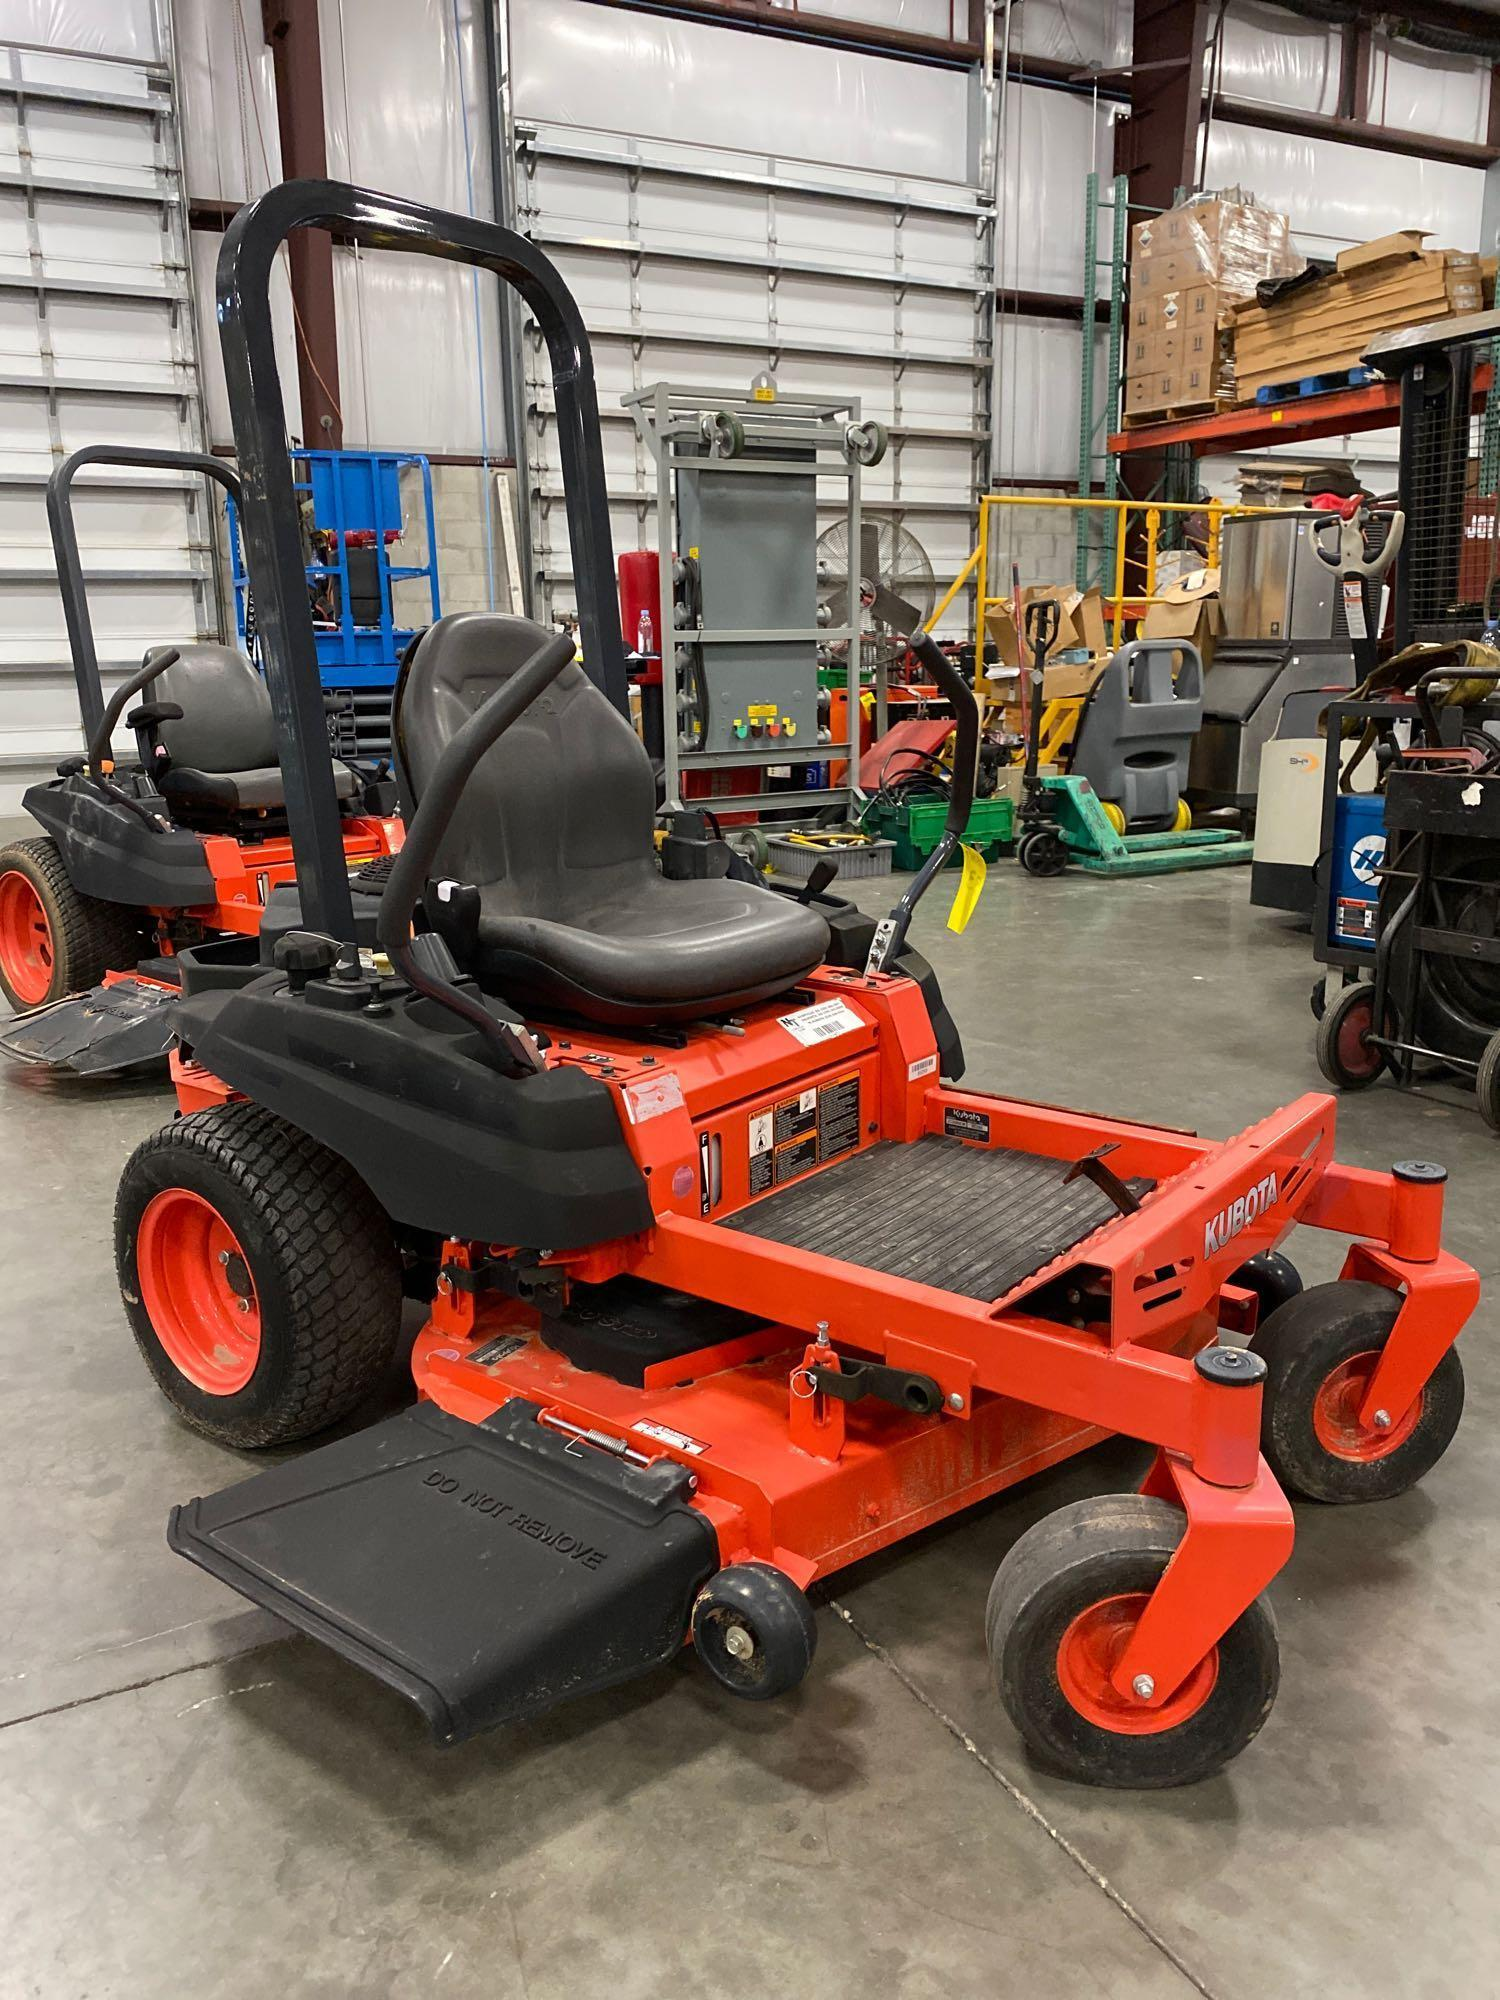 """2016 KUBOTA Z122RKW 42"""" RIDE ON MOWER, 3.9 HOURS SHOWING, RUNS AND OPERATES - Image 3 of 9"""